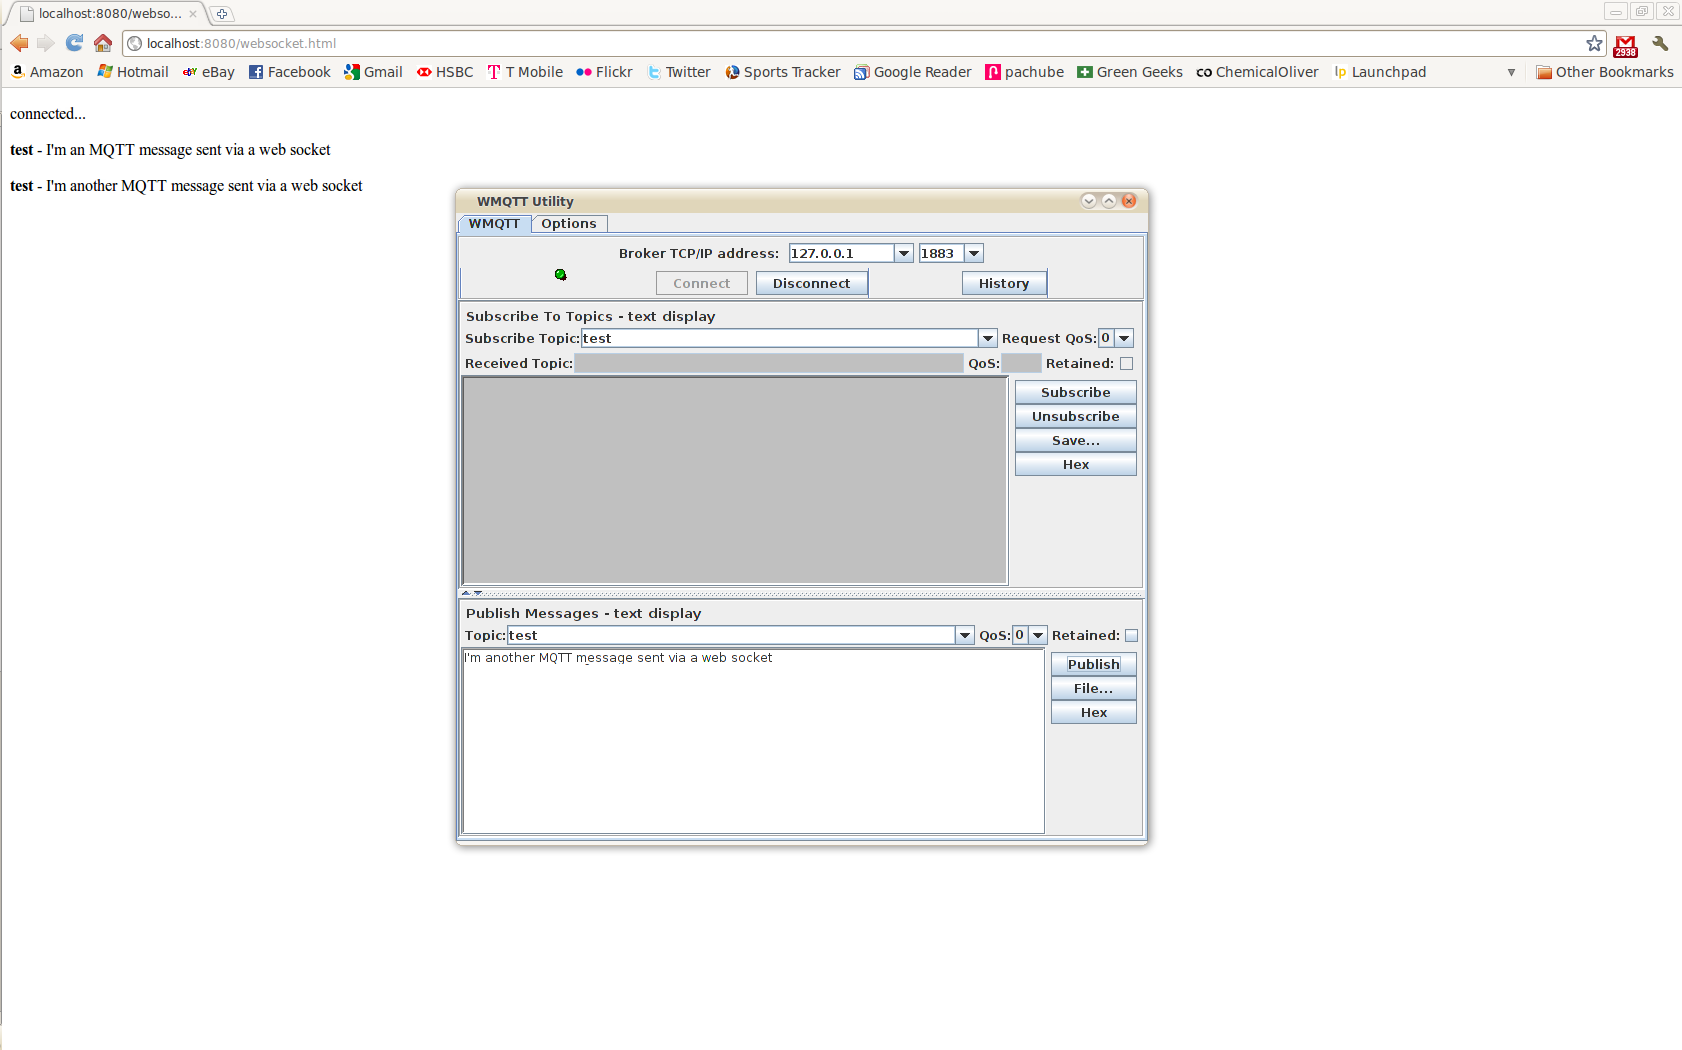 A simple MQTT to Websocket Bridge using Mosquitto and